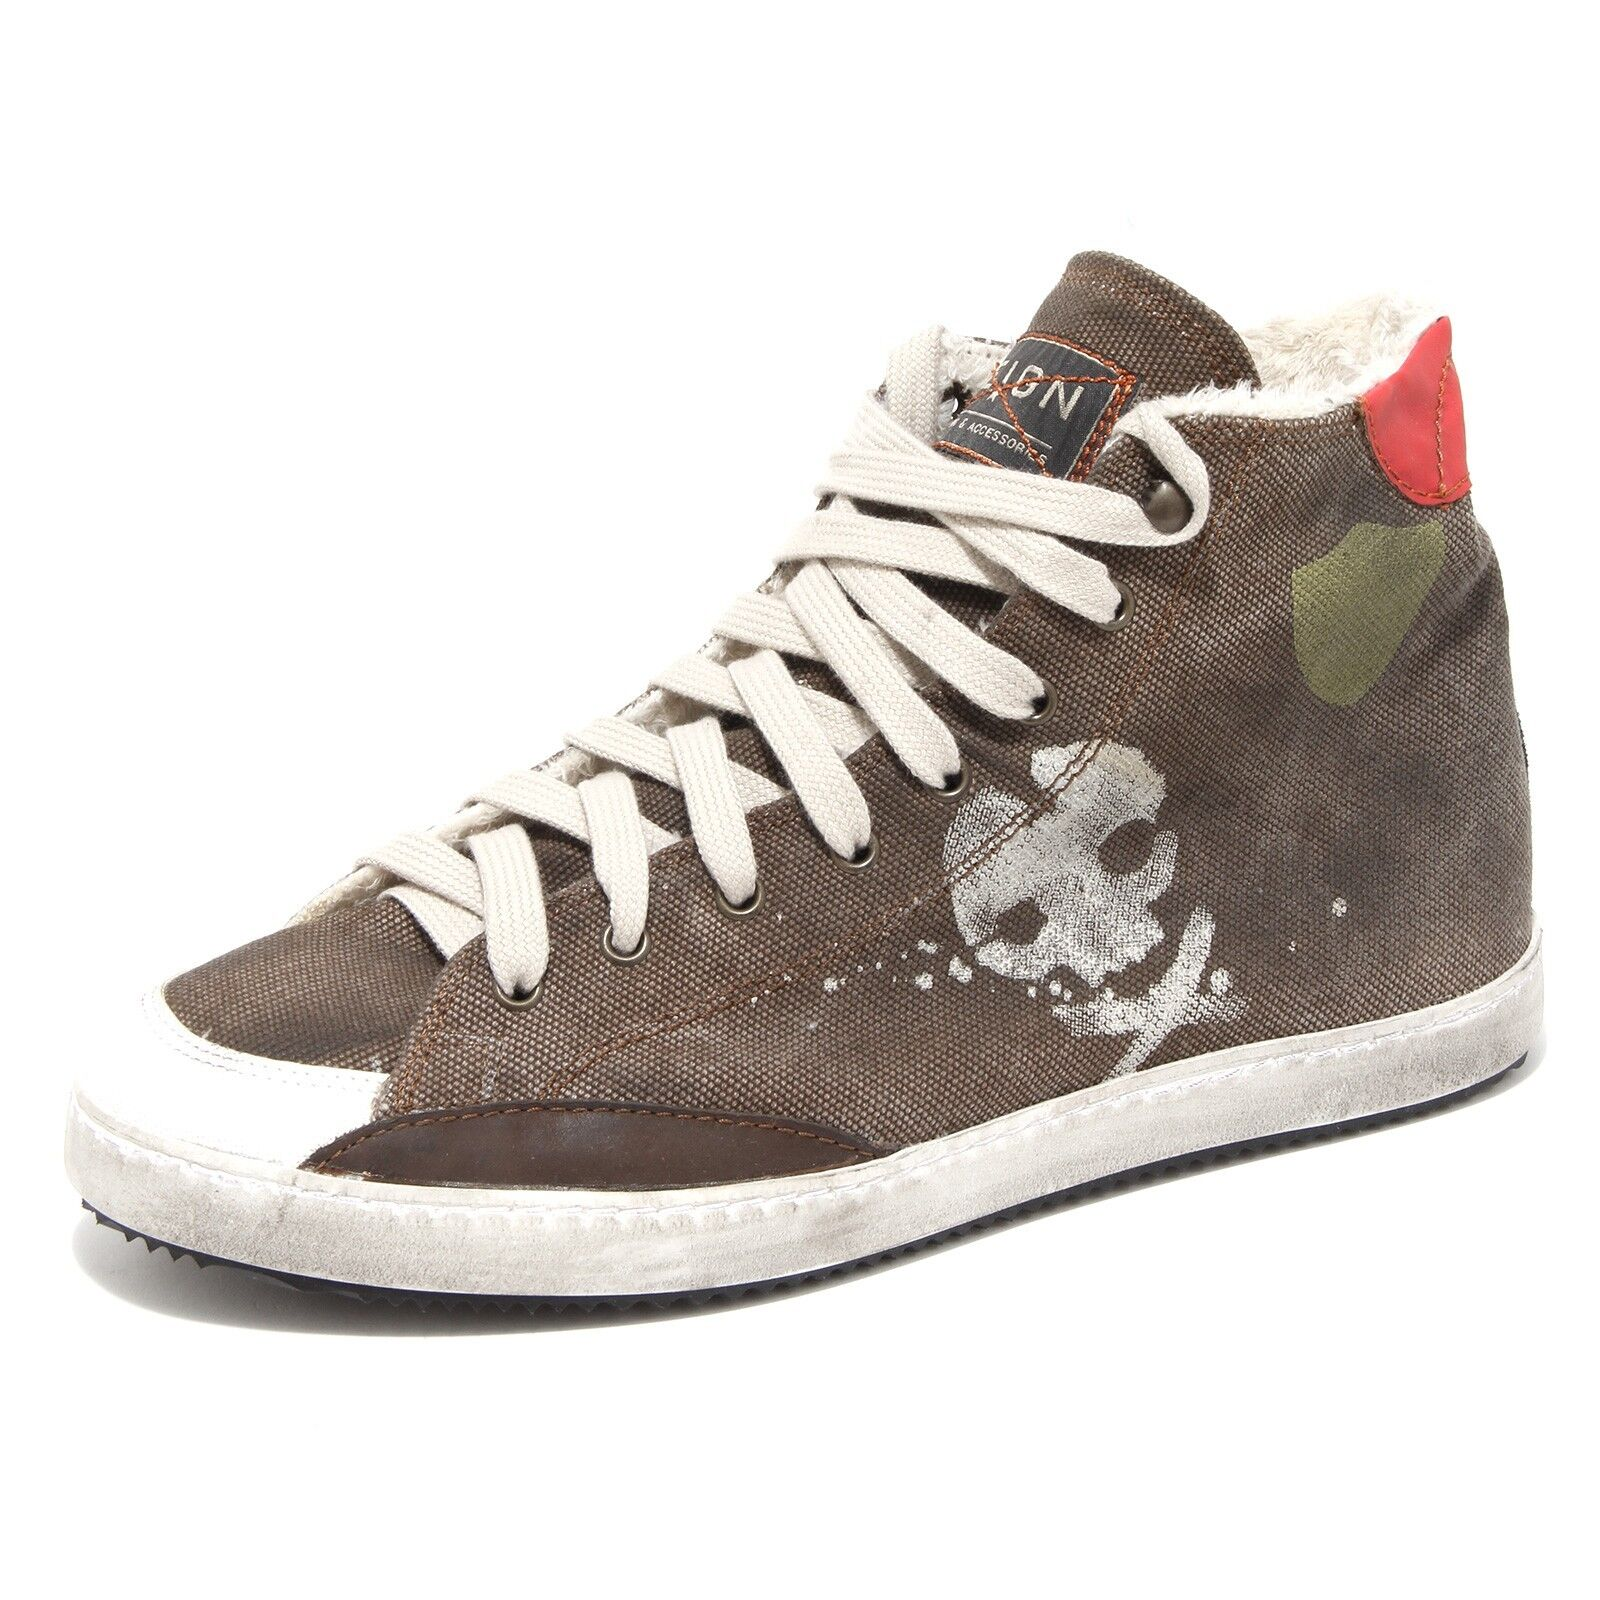 50927 sneaker REIGN OUTLET scarpa uomo shoes men